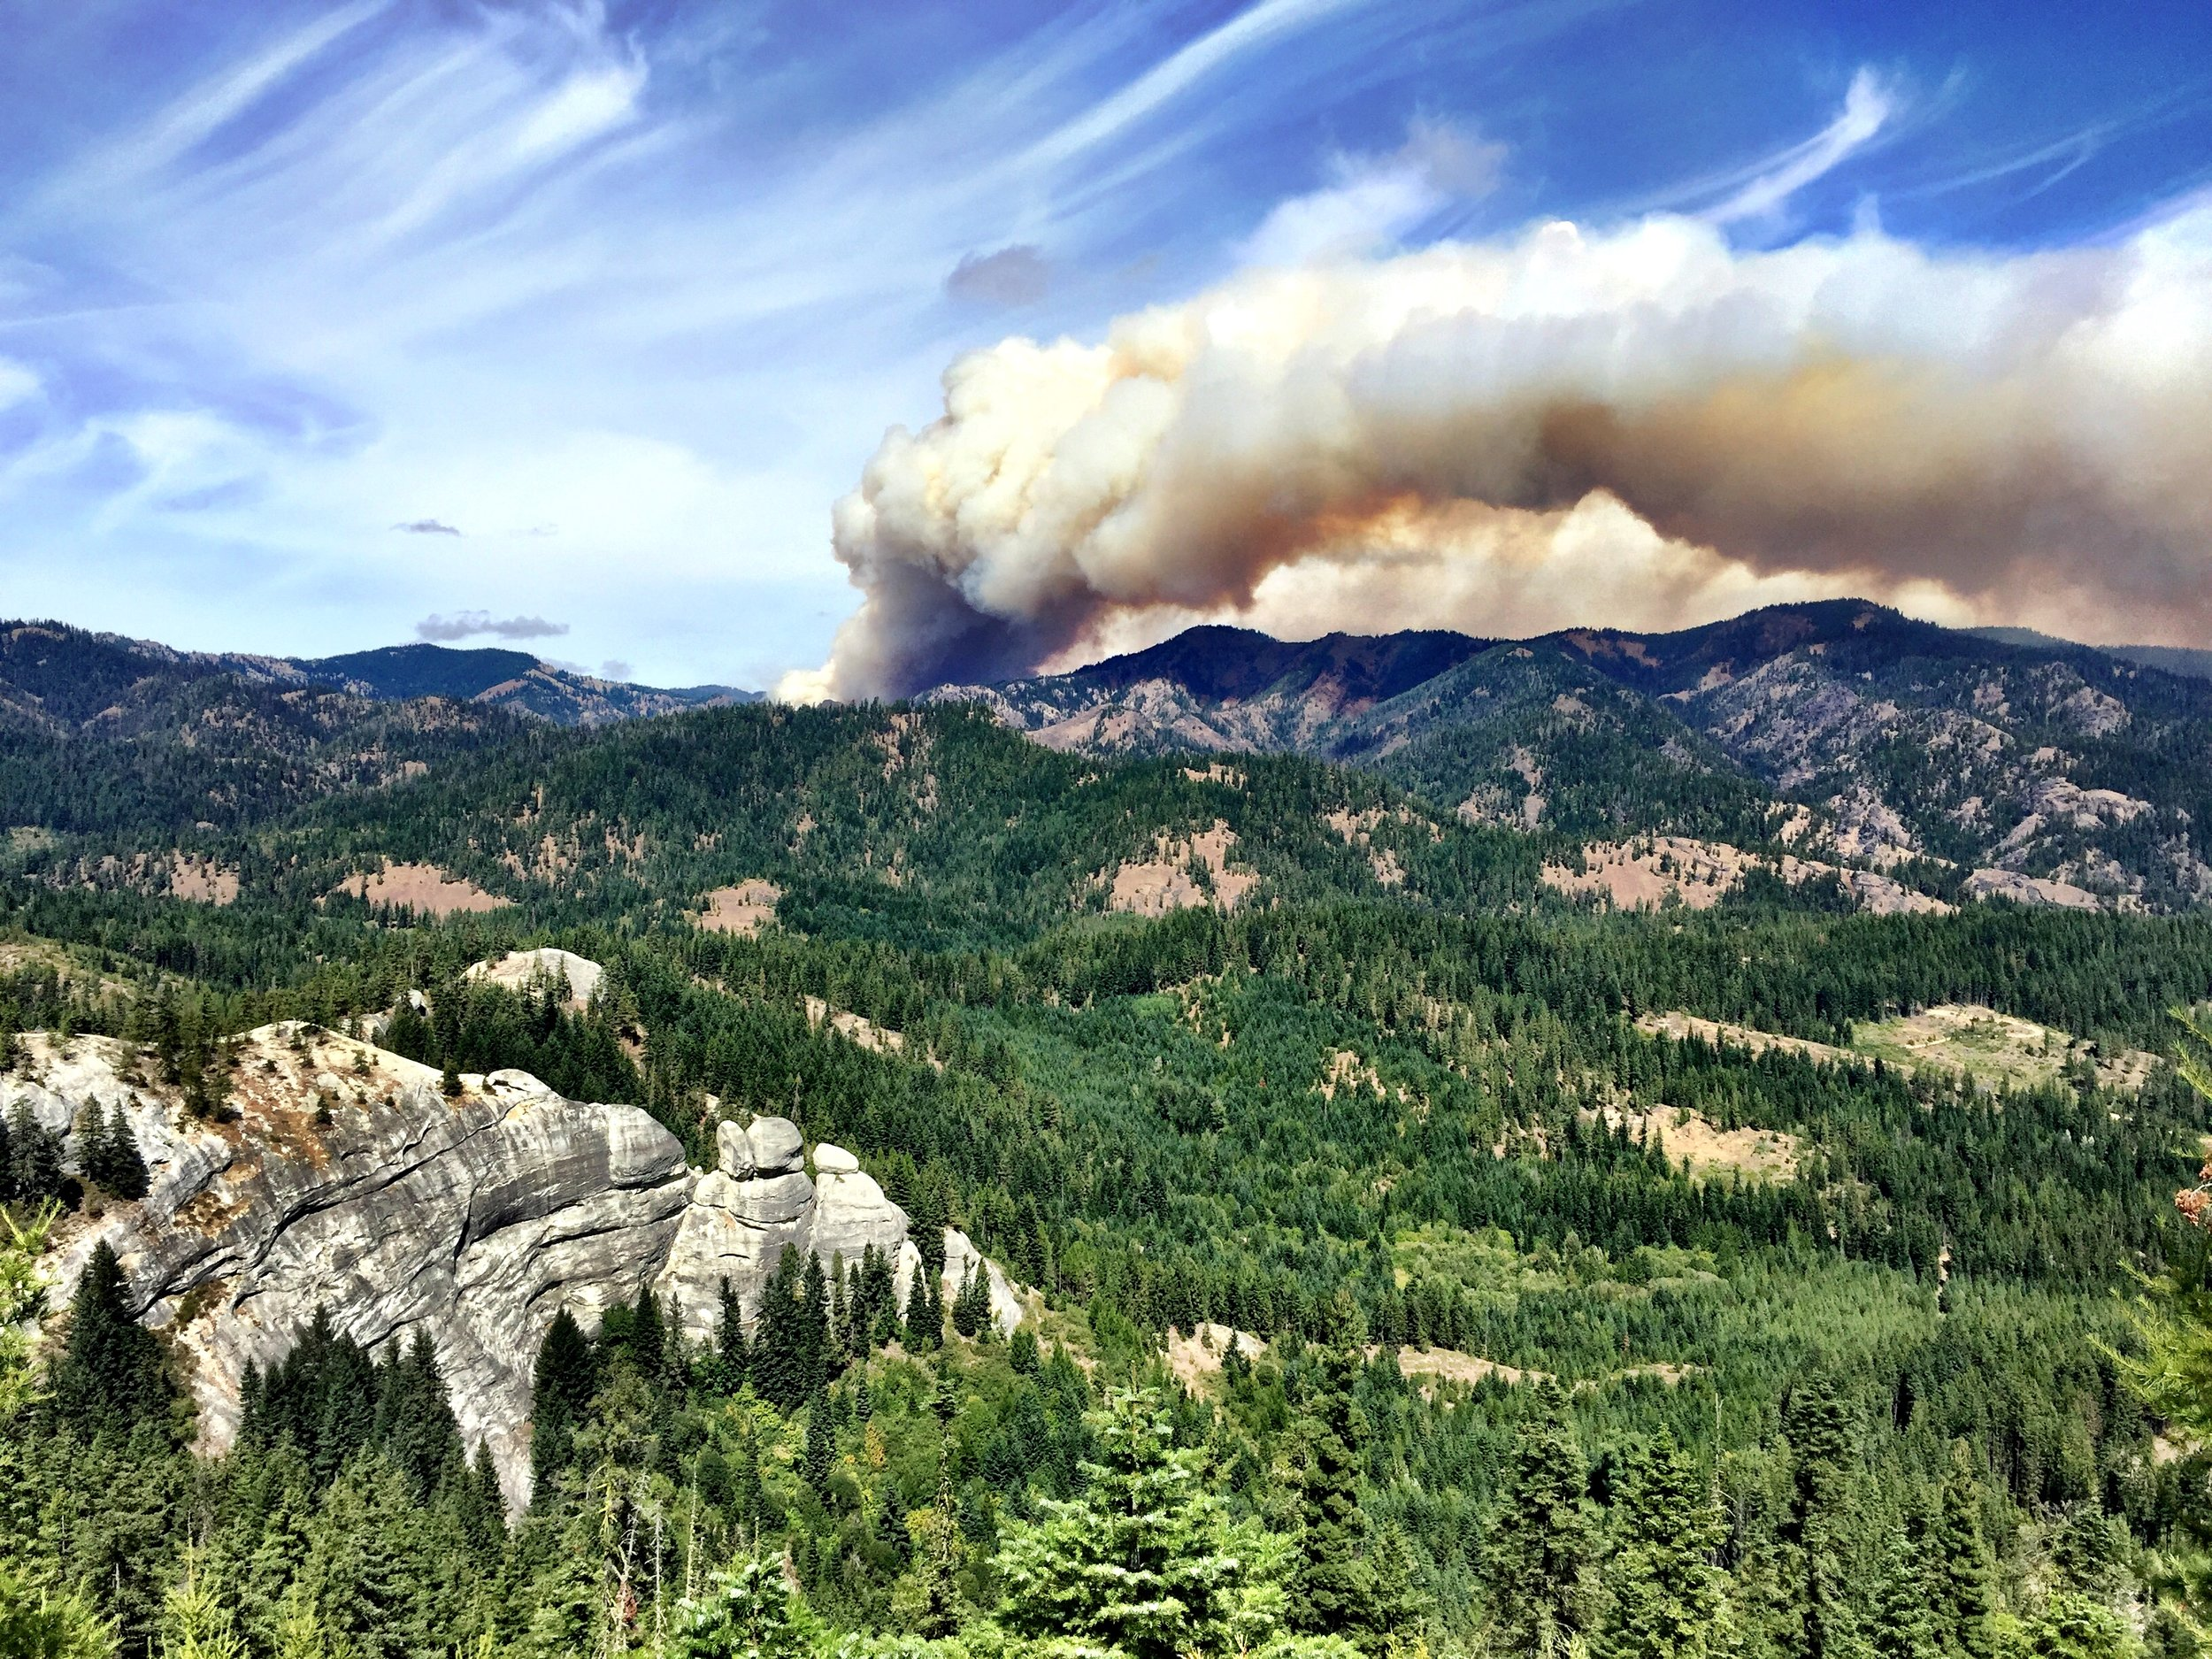 The Jolly Mountain Fire burns in an area near Roslyn, Ronald and Cle Elum. Photo by Brian Mize/TNC.